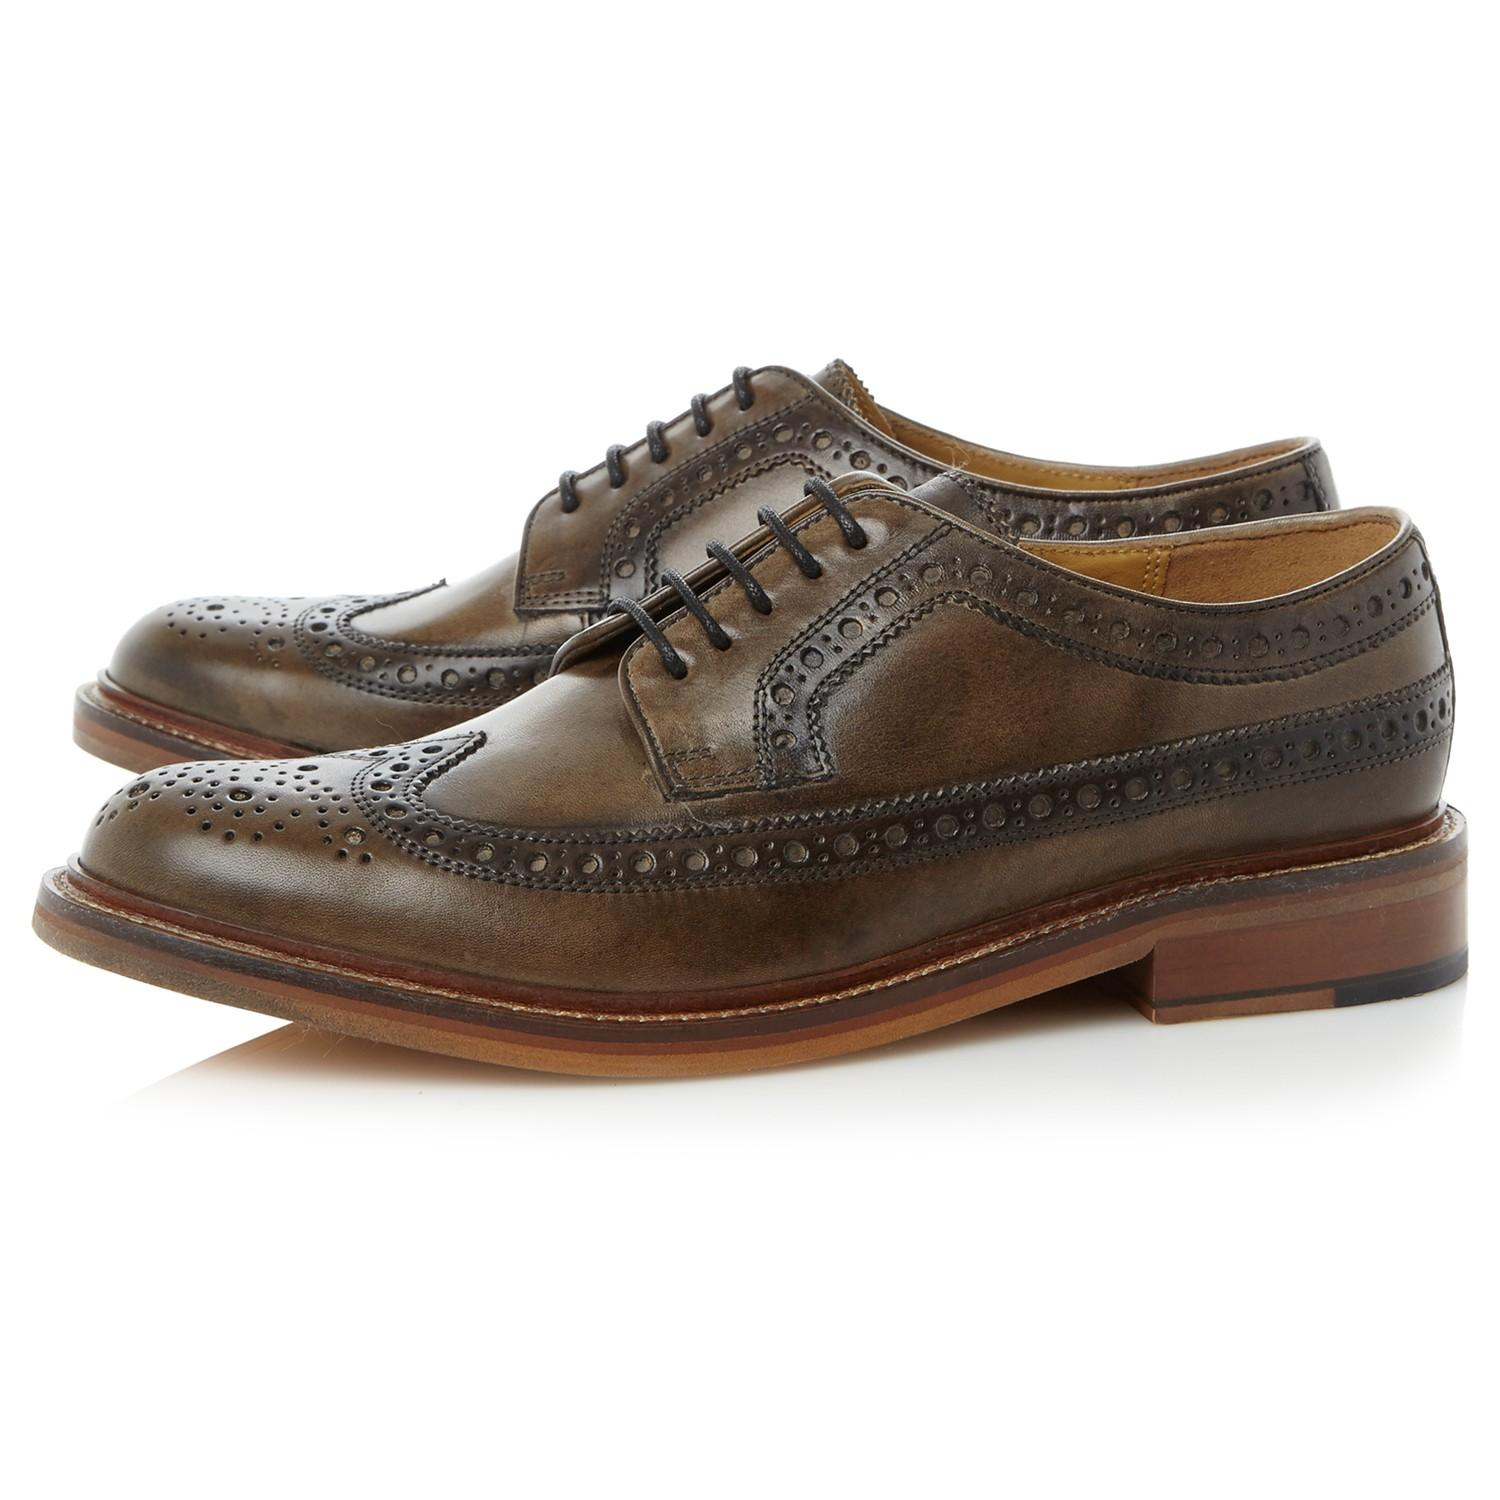 Bertie Leather Pharrell Lace Up Brogue Shoes in Grey (Grey) for Men